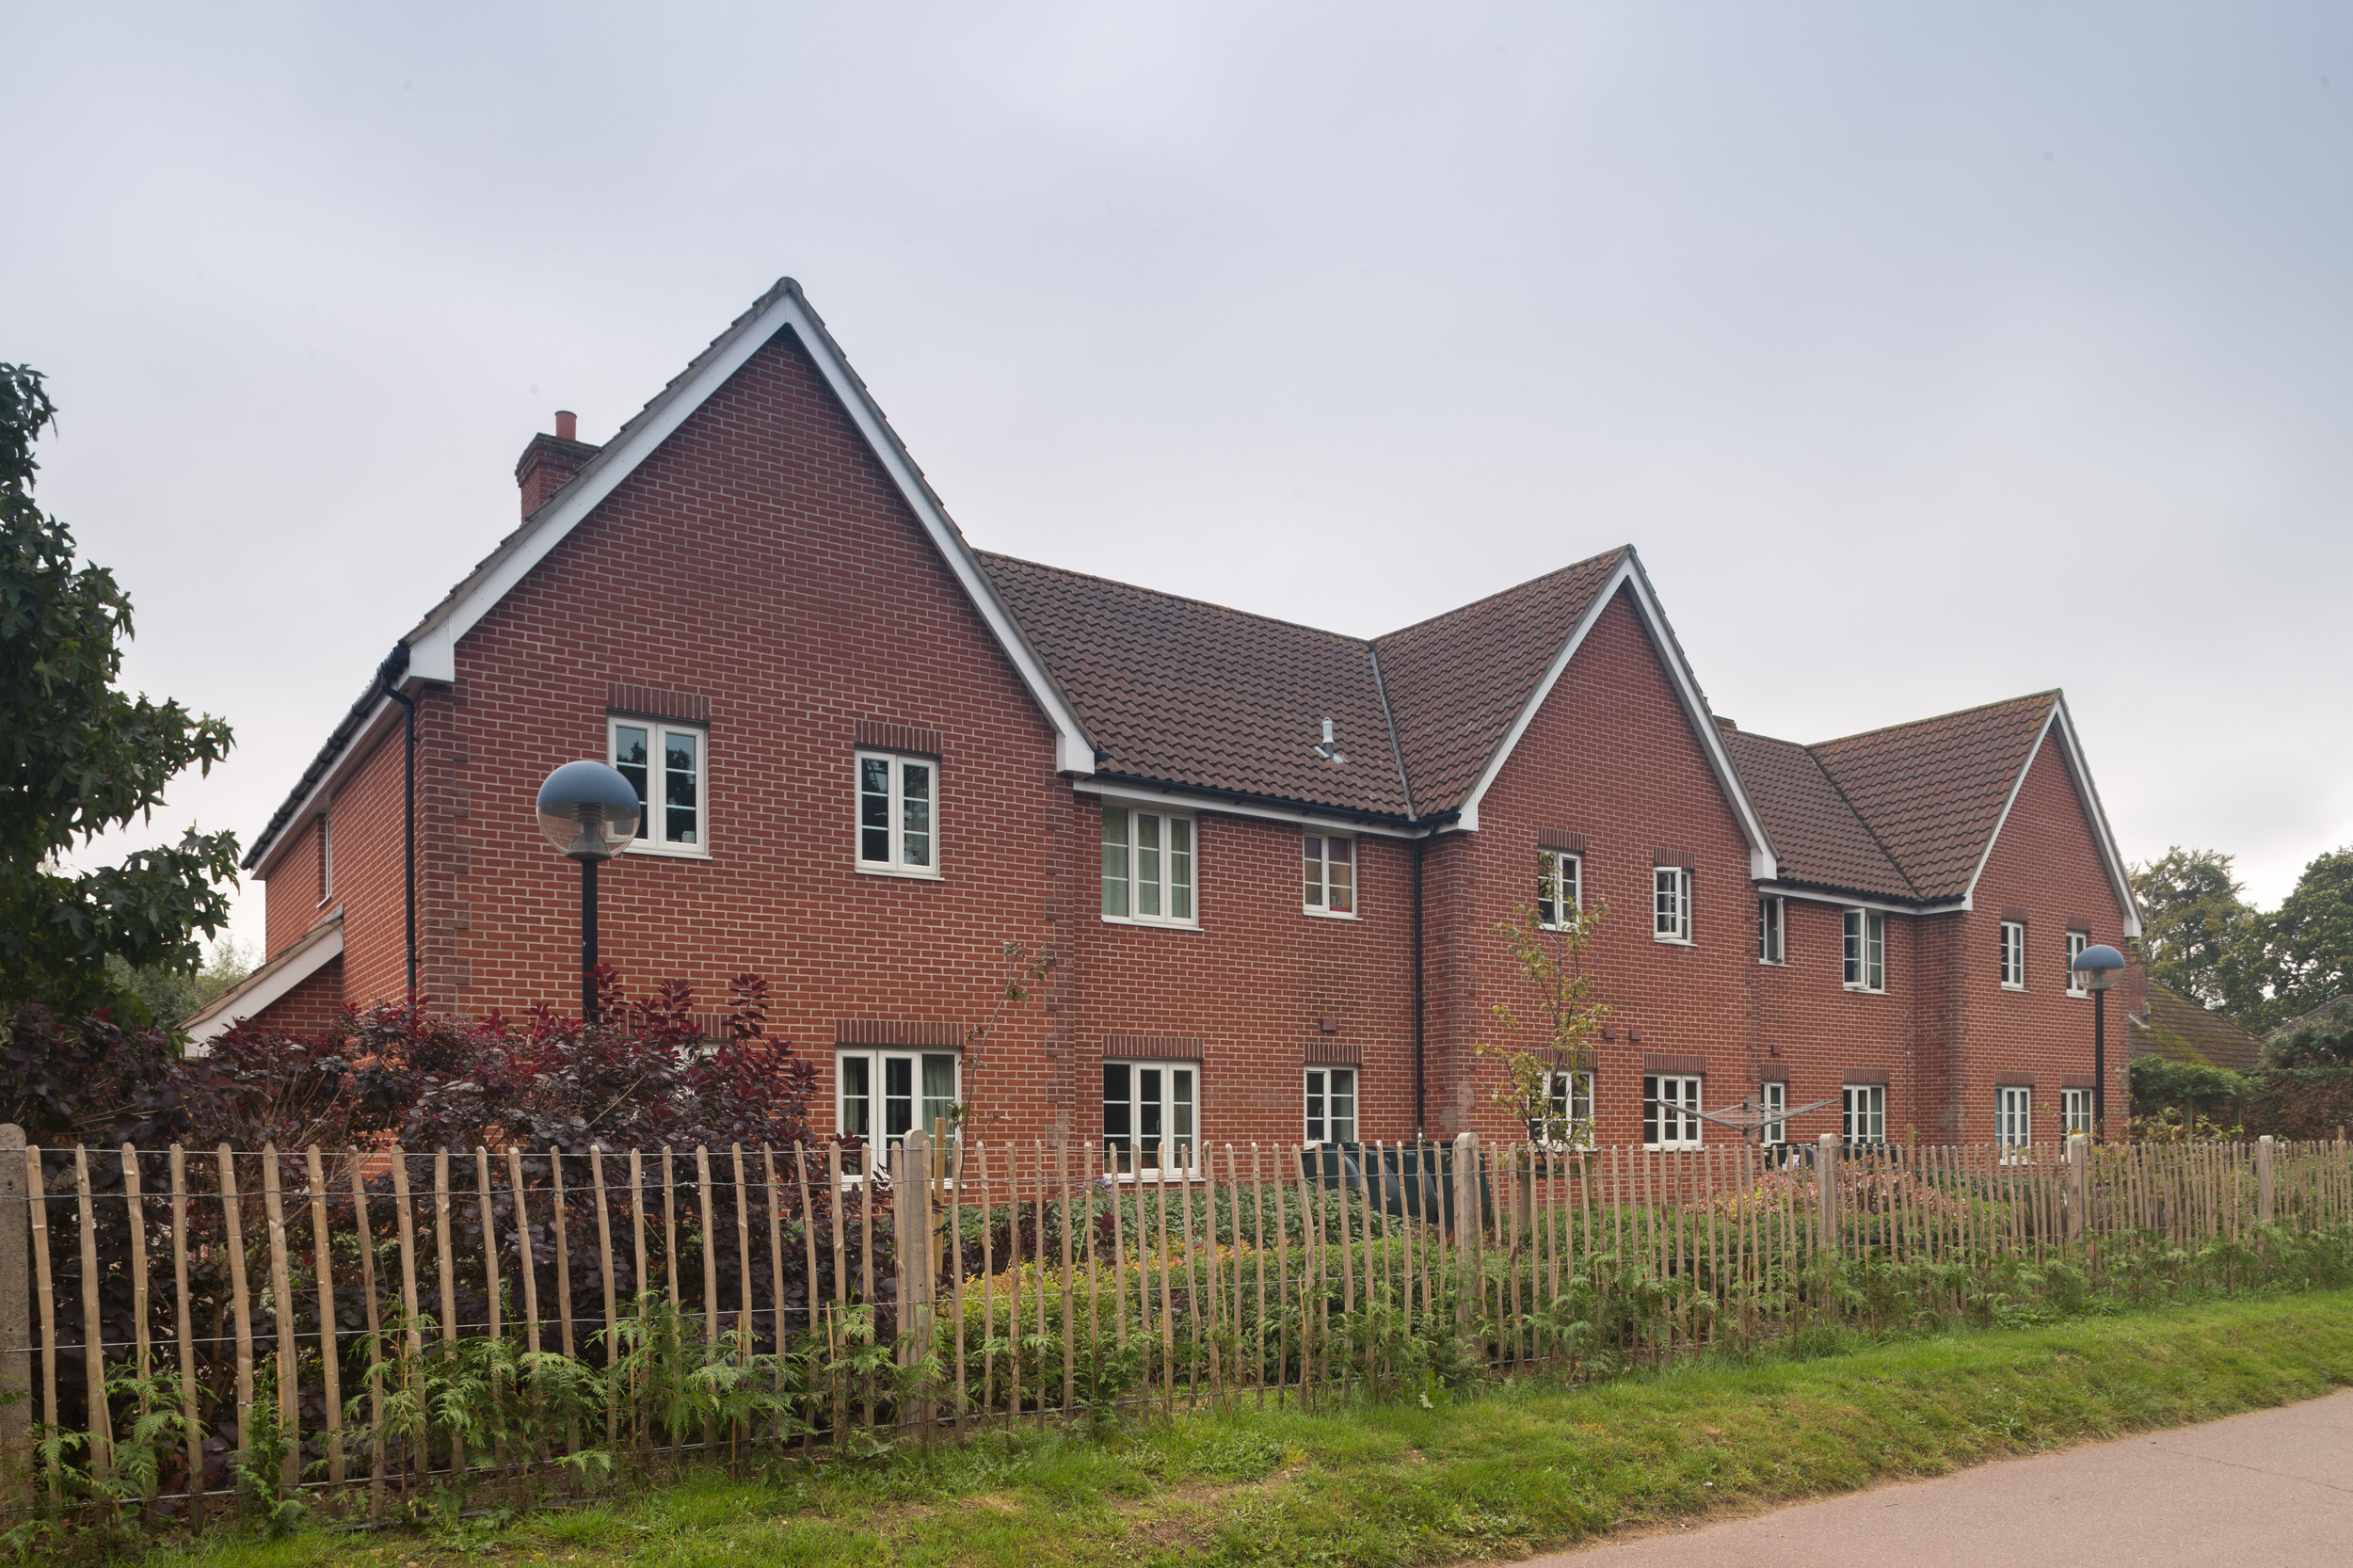 A mixed used development consisting of a church hall and ancillary accommodation for community events; office accommodation for the client, and residential flats.